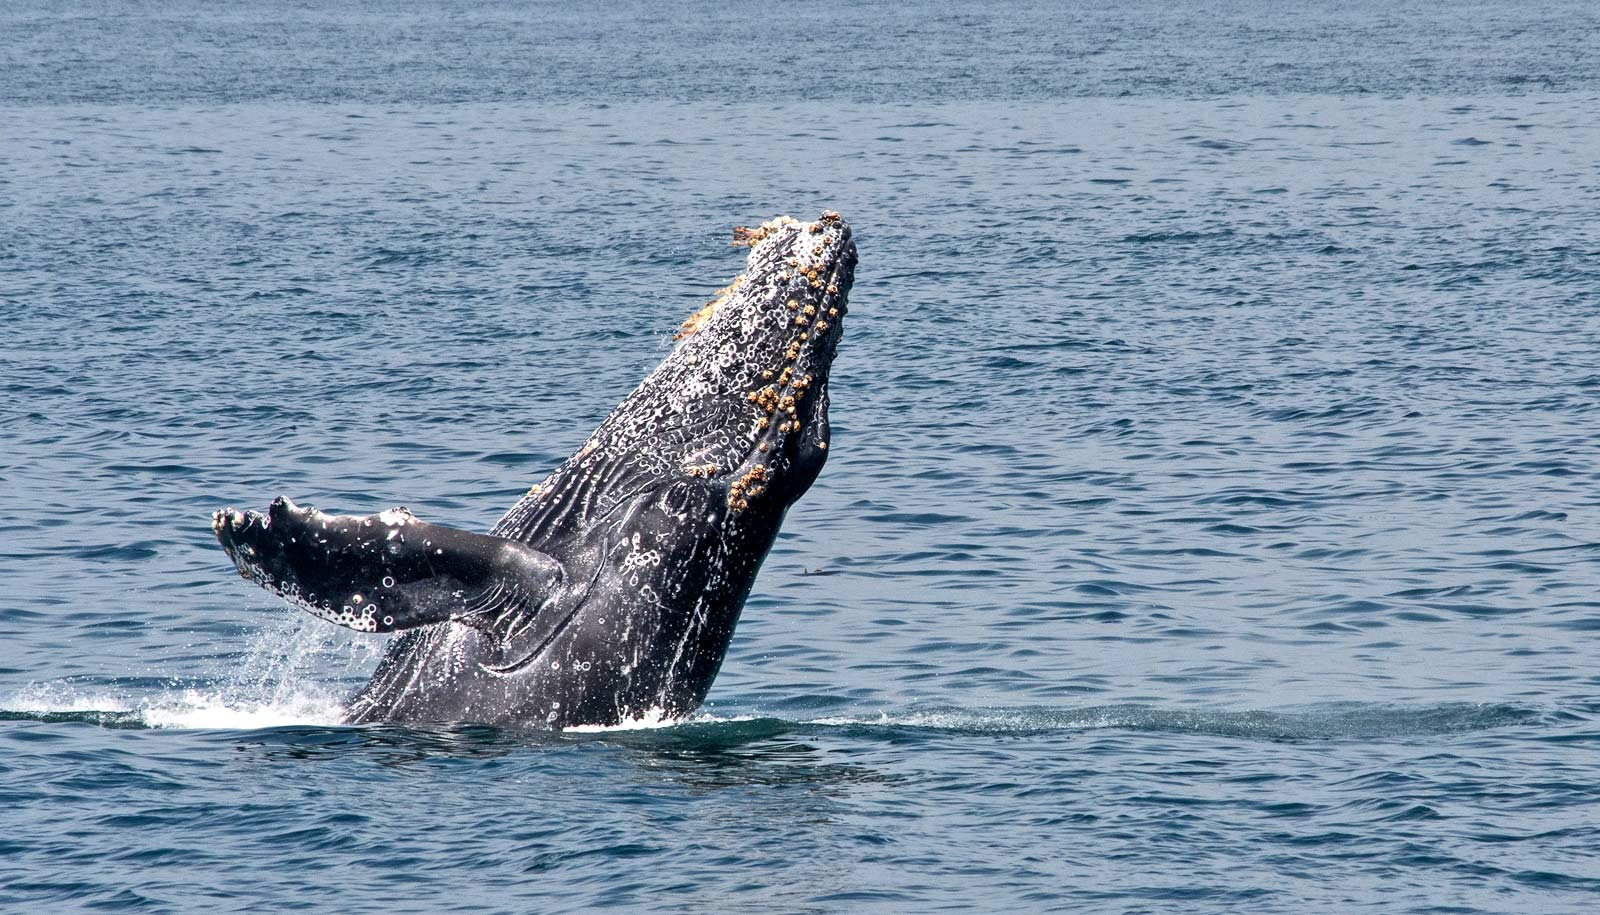 A-New-Study-Suggests-Whale-Migrate-to-Keep-Their-Skin-Healthy